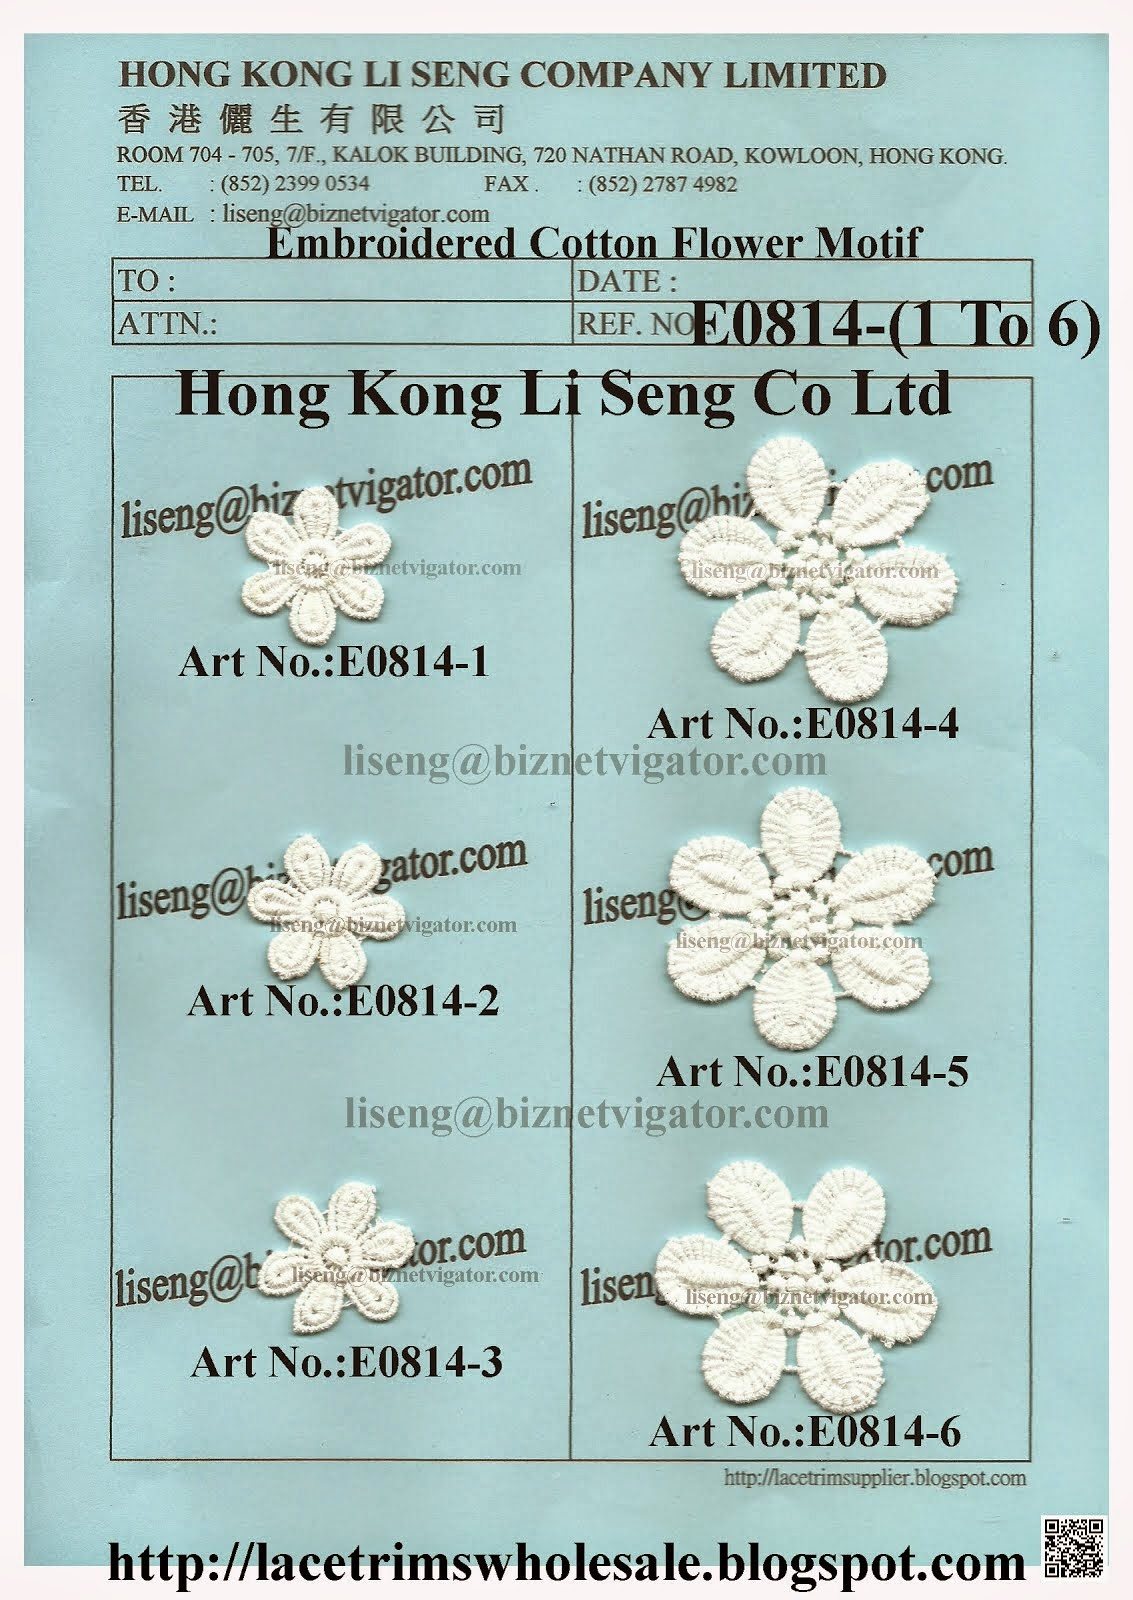 Embroidered Cotton 3D Flower Motif Manufacturer Wholesaler Supplier - Hong Kong Li Seng Co Ltd